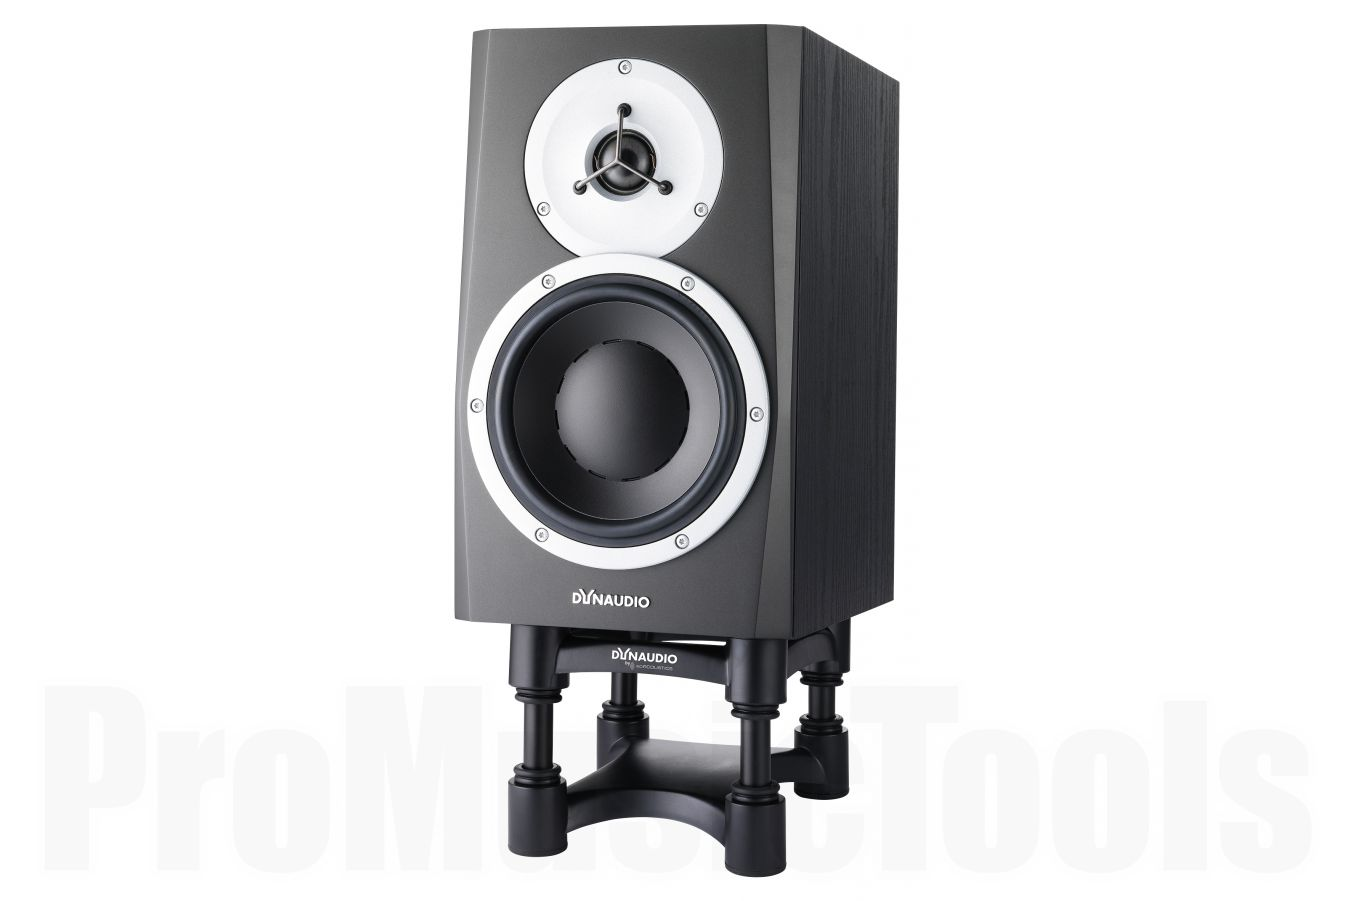 Dynaudio BM5 mkIII incl. IsoAcoustics ISO-L8R155 speaker stand - b-stock (1x opened box)